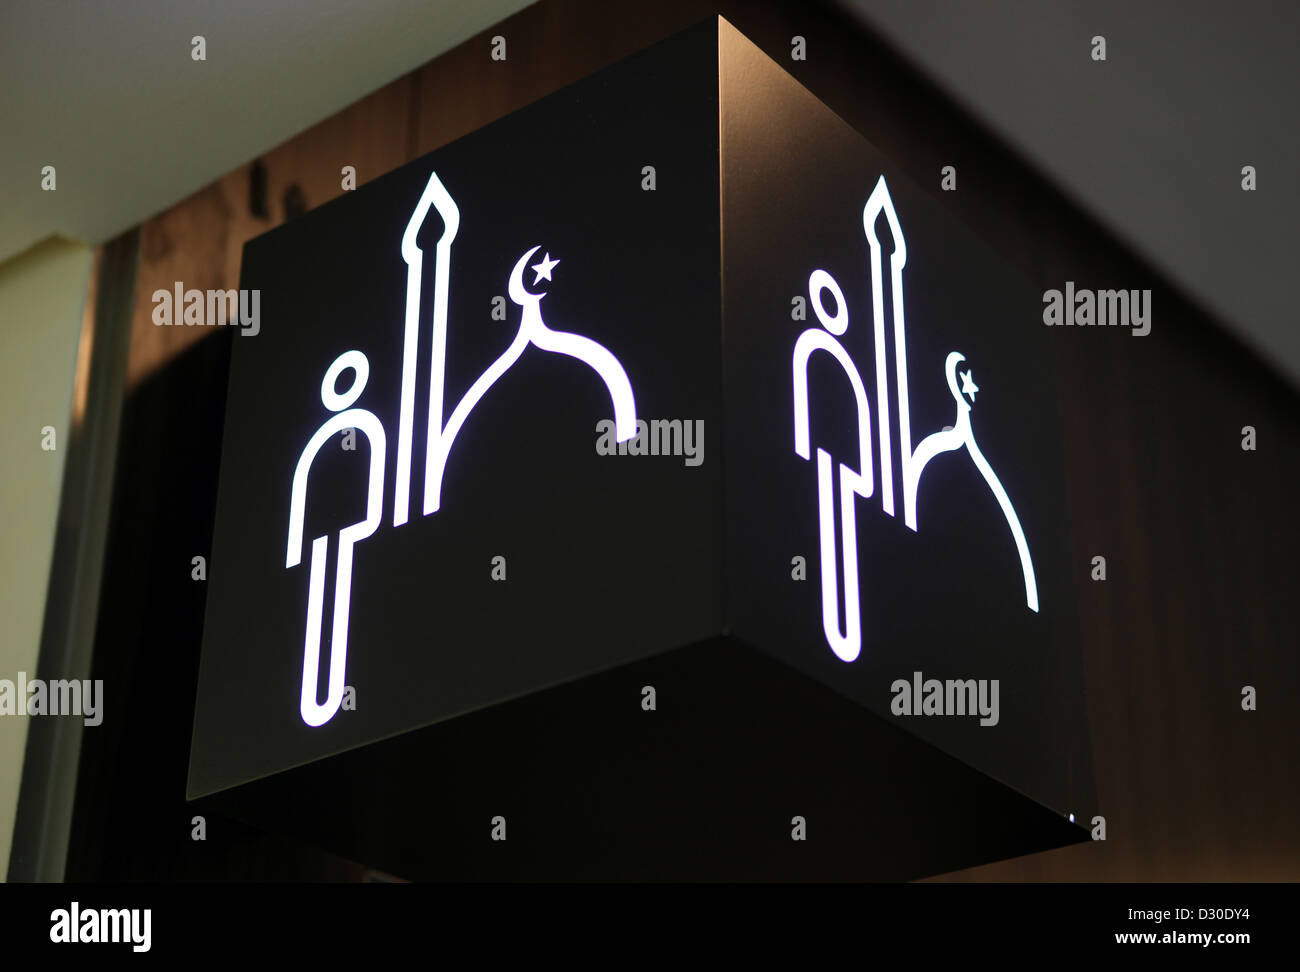 Dubai United Arab Emirates Sign Prayer Room For Men In A Mosque Stock Photo 53486024 Alamy